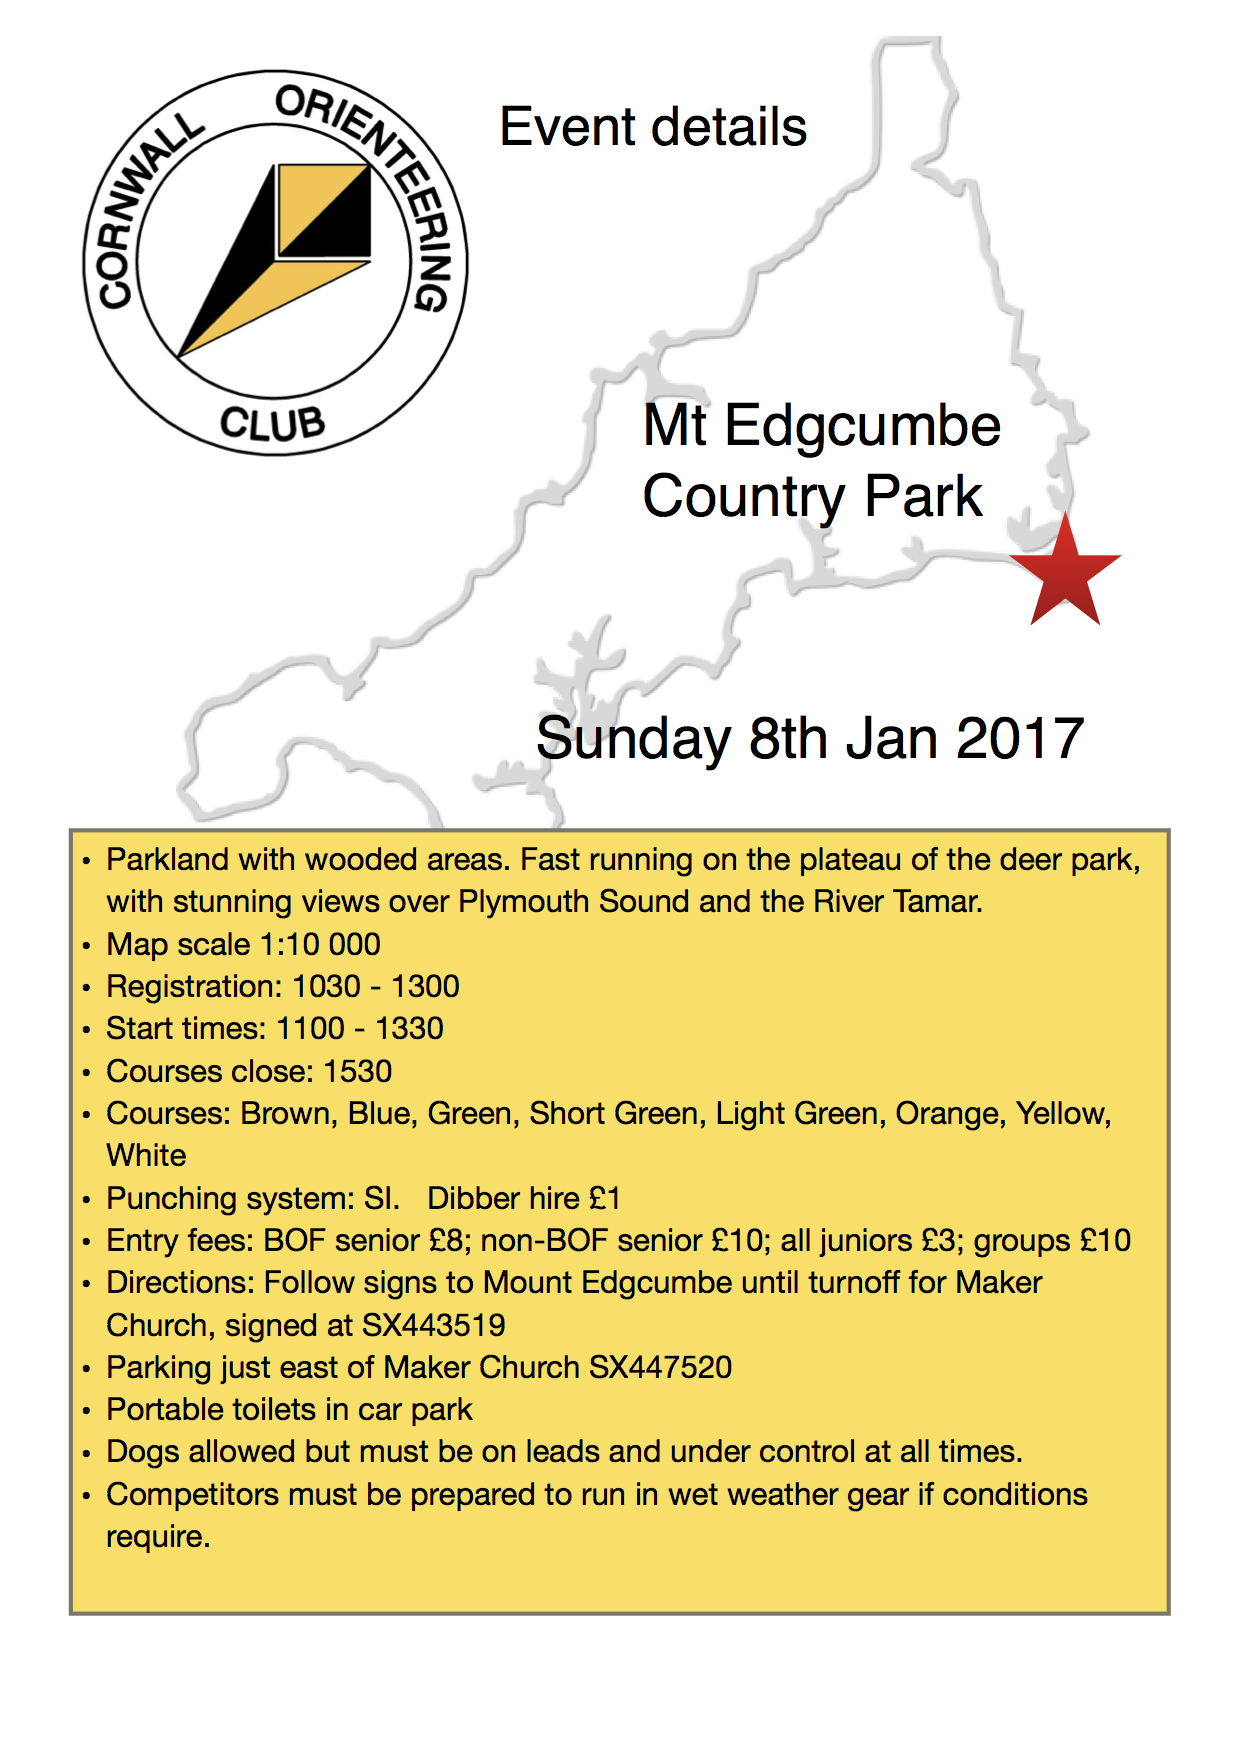 Flyer for Mt Edgcumbe event